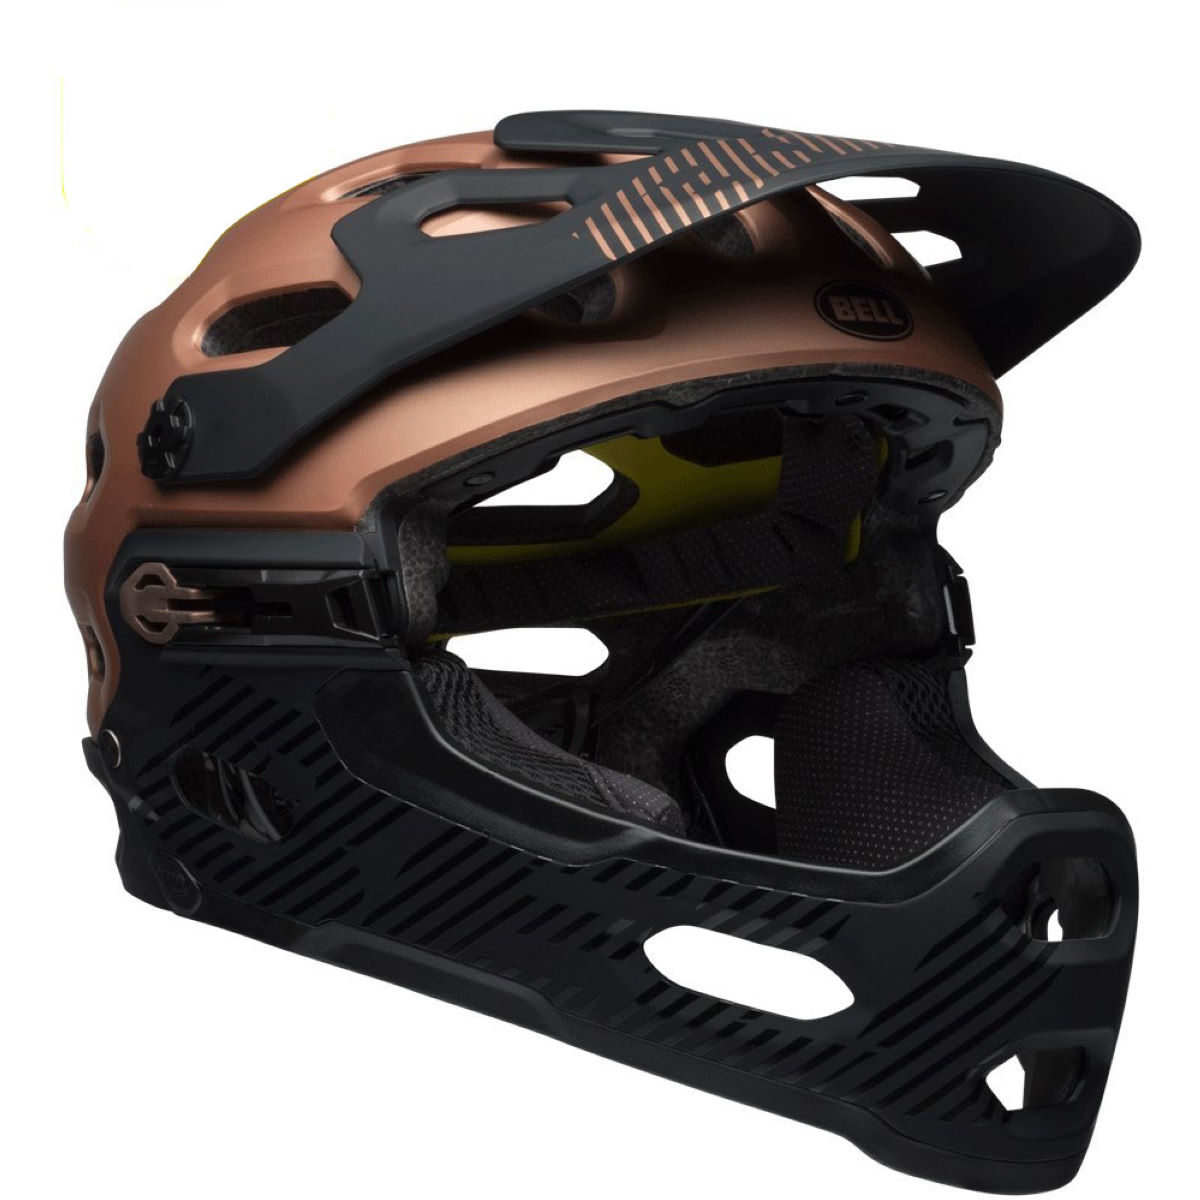 Casque Bell Super 3R MIPS - S Matte/Gloss Copper/B Casques